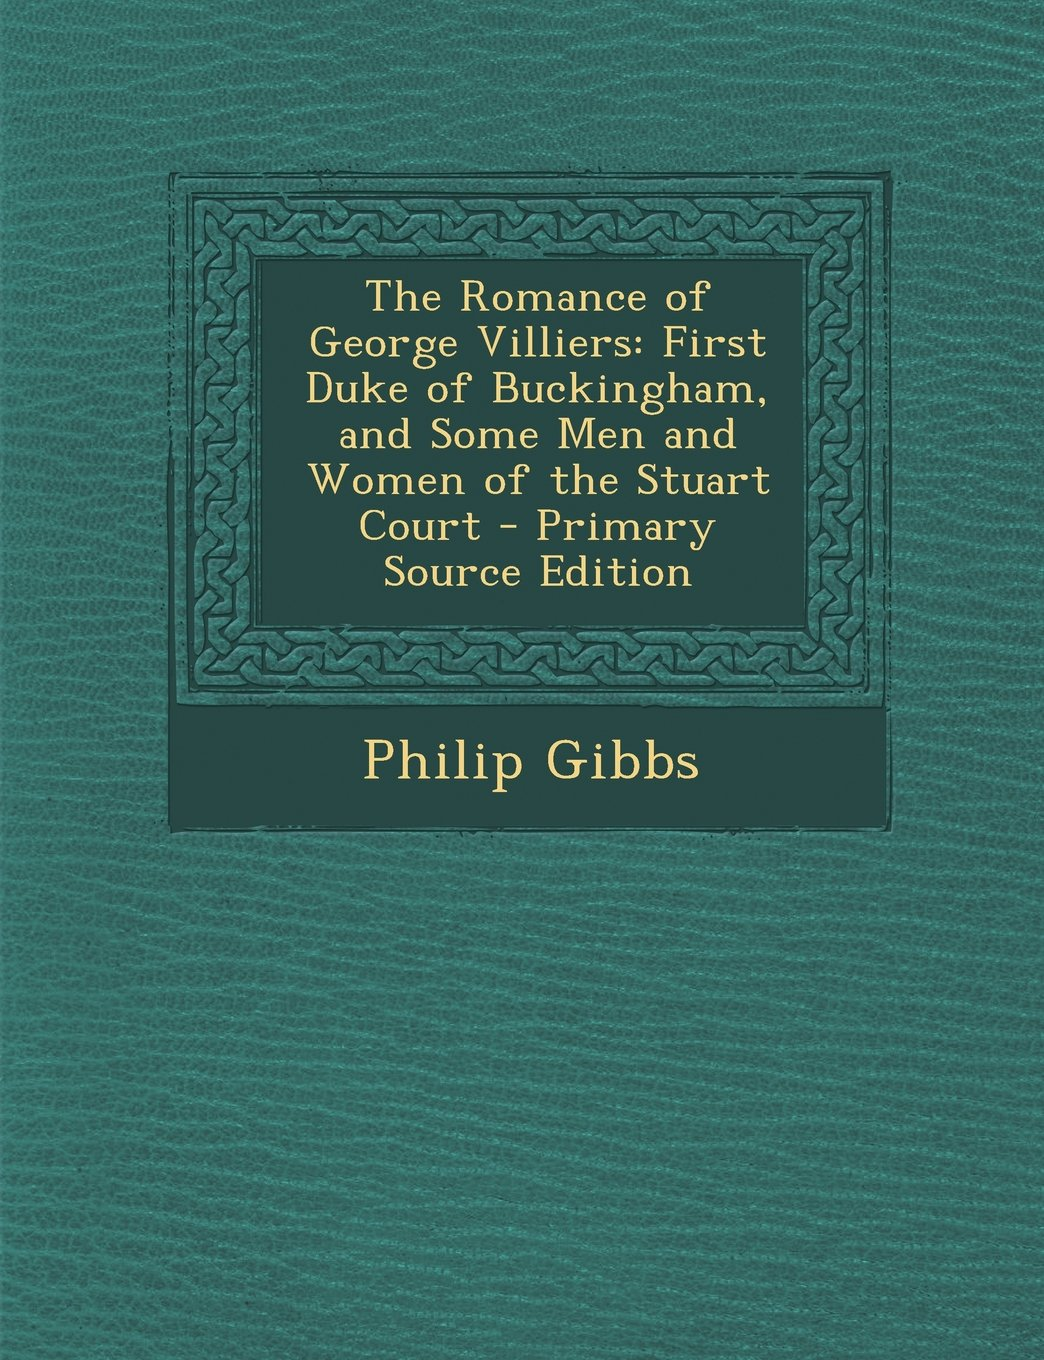 The Romance of George Villiers: First Duke of Buckingham, and Some Men and Women of the Stuart Court - Primary Source Edition ebook